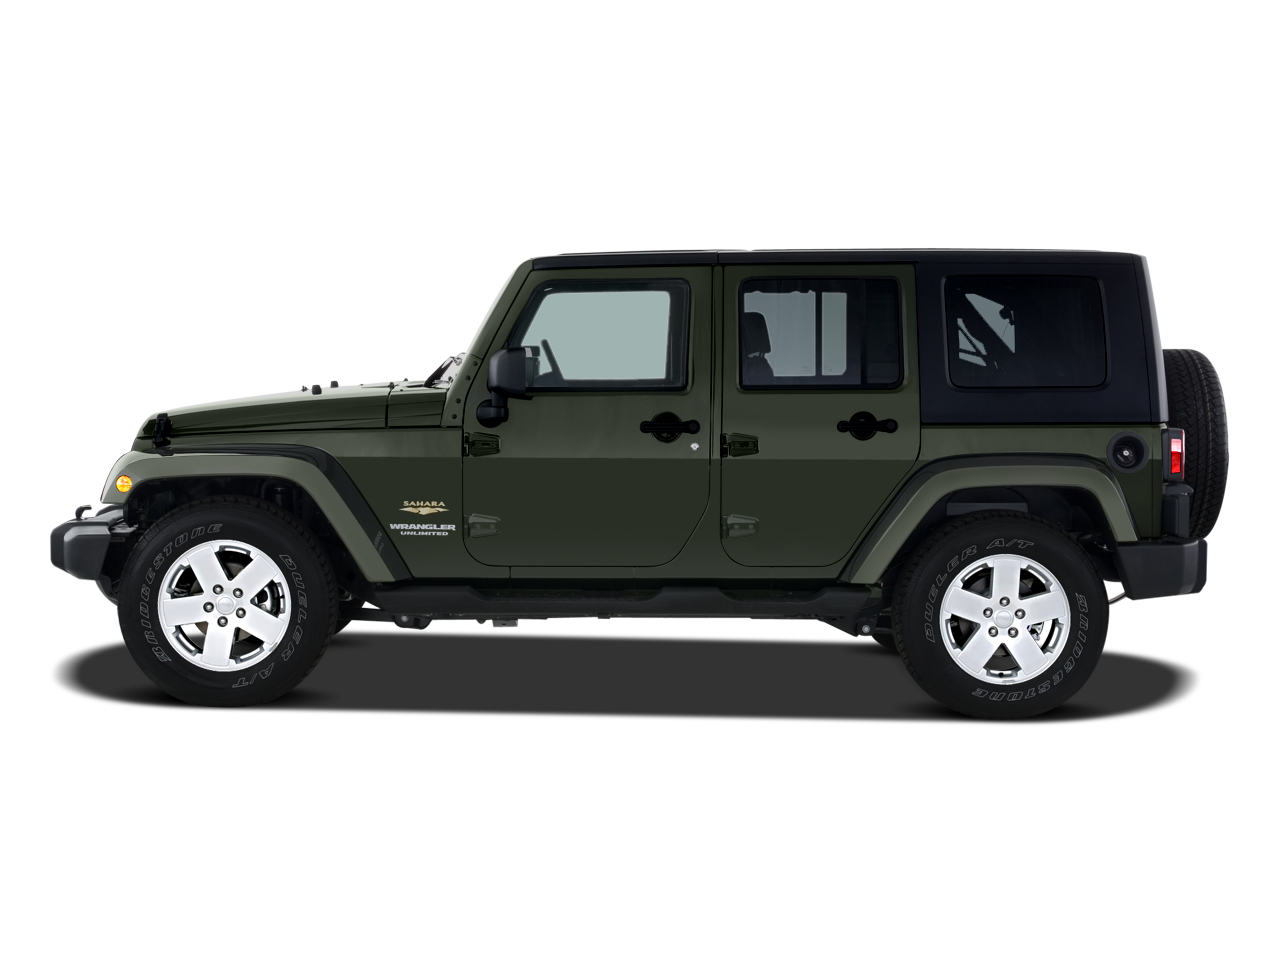 2015 body style of jeep wrangler autos post. Black Bedroom Furniture Sets. Home Design Ideas